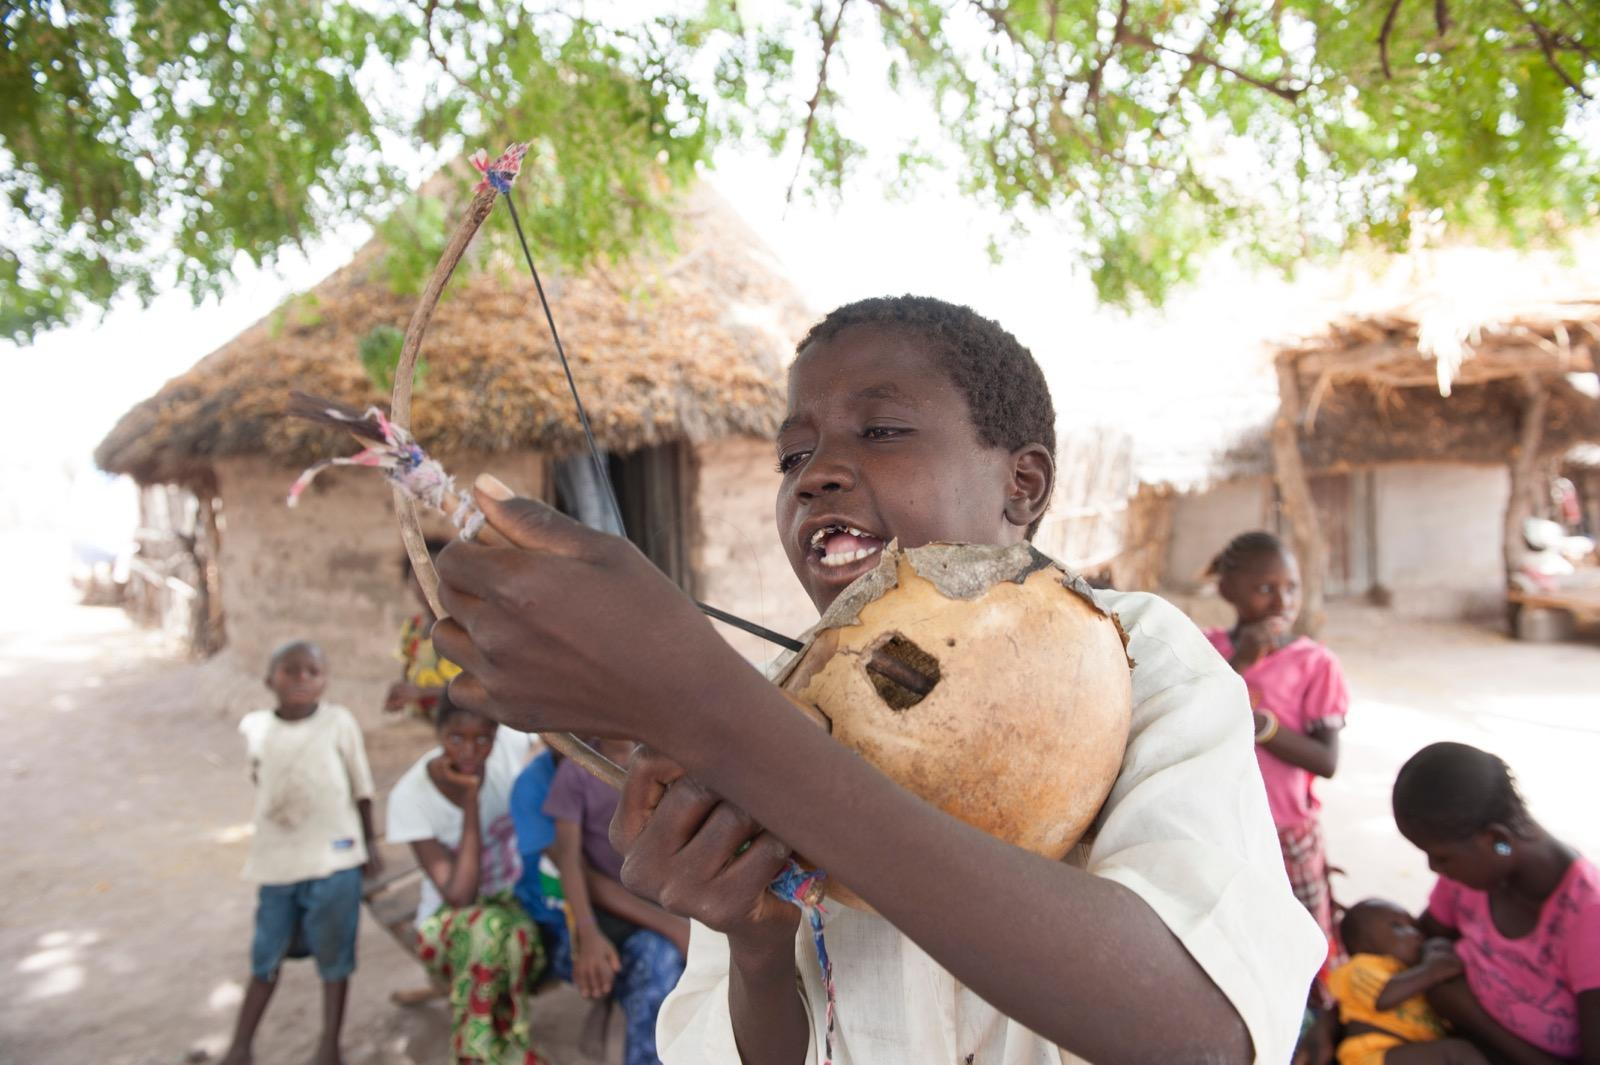 Boy playing instrument